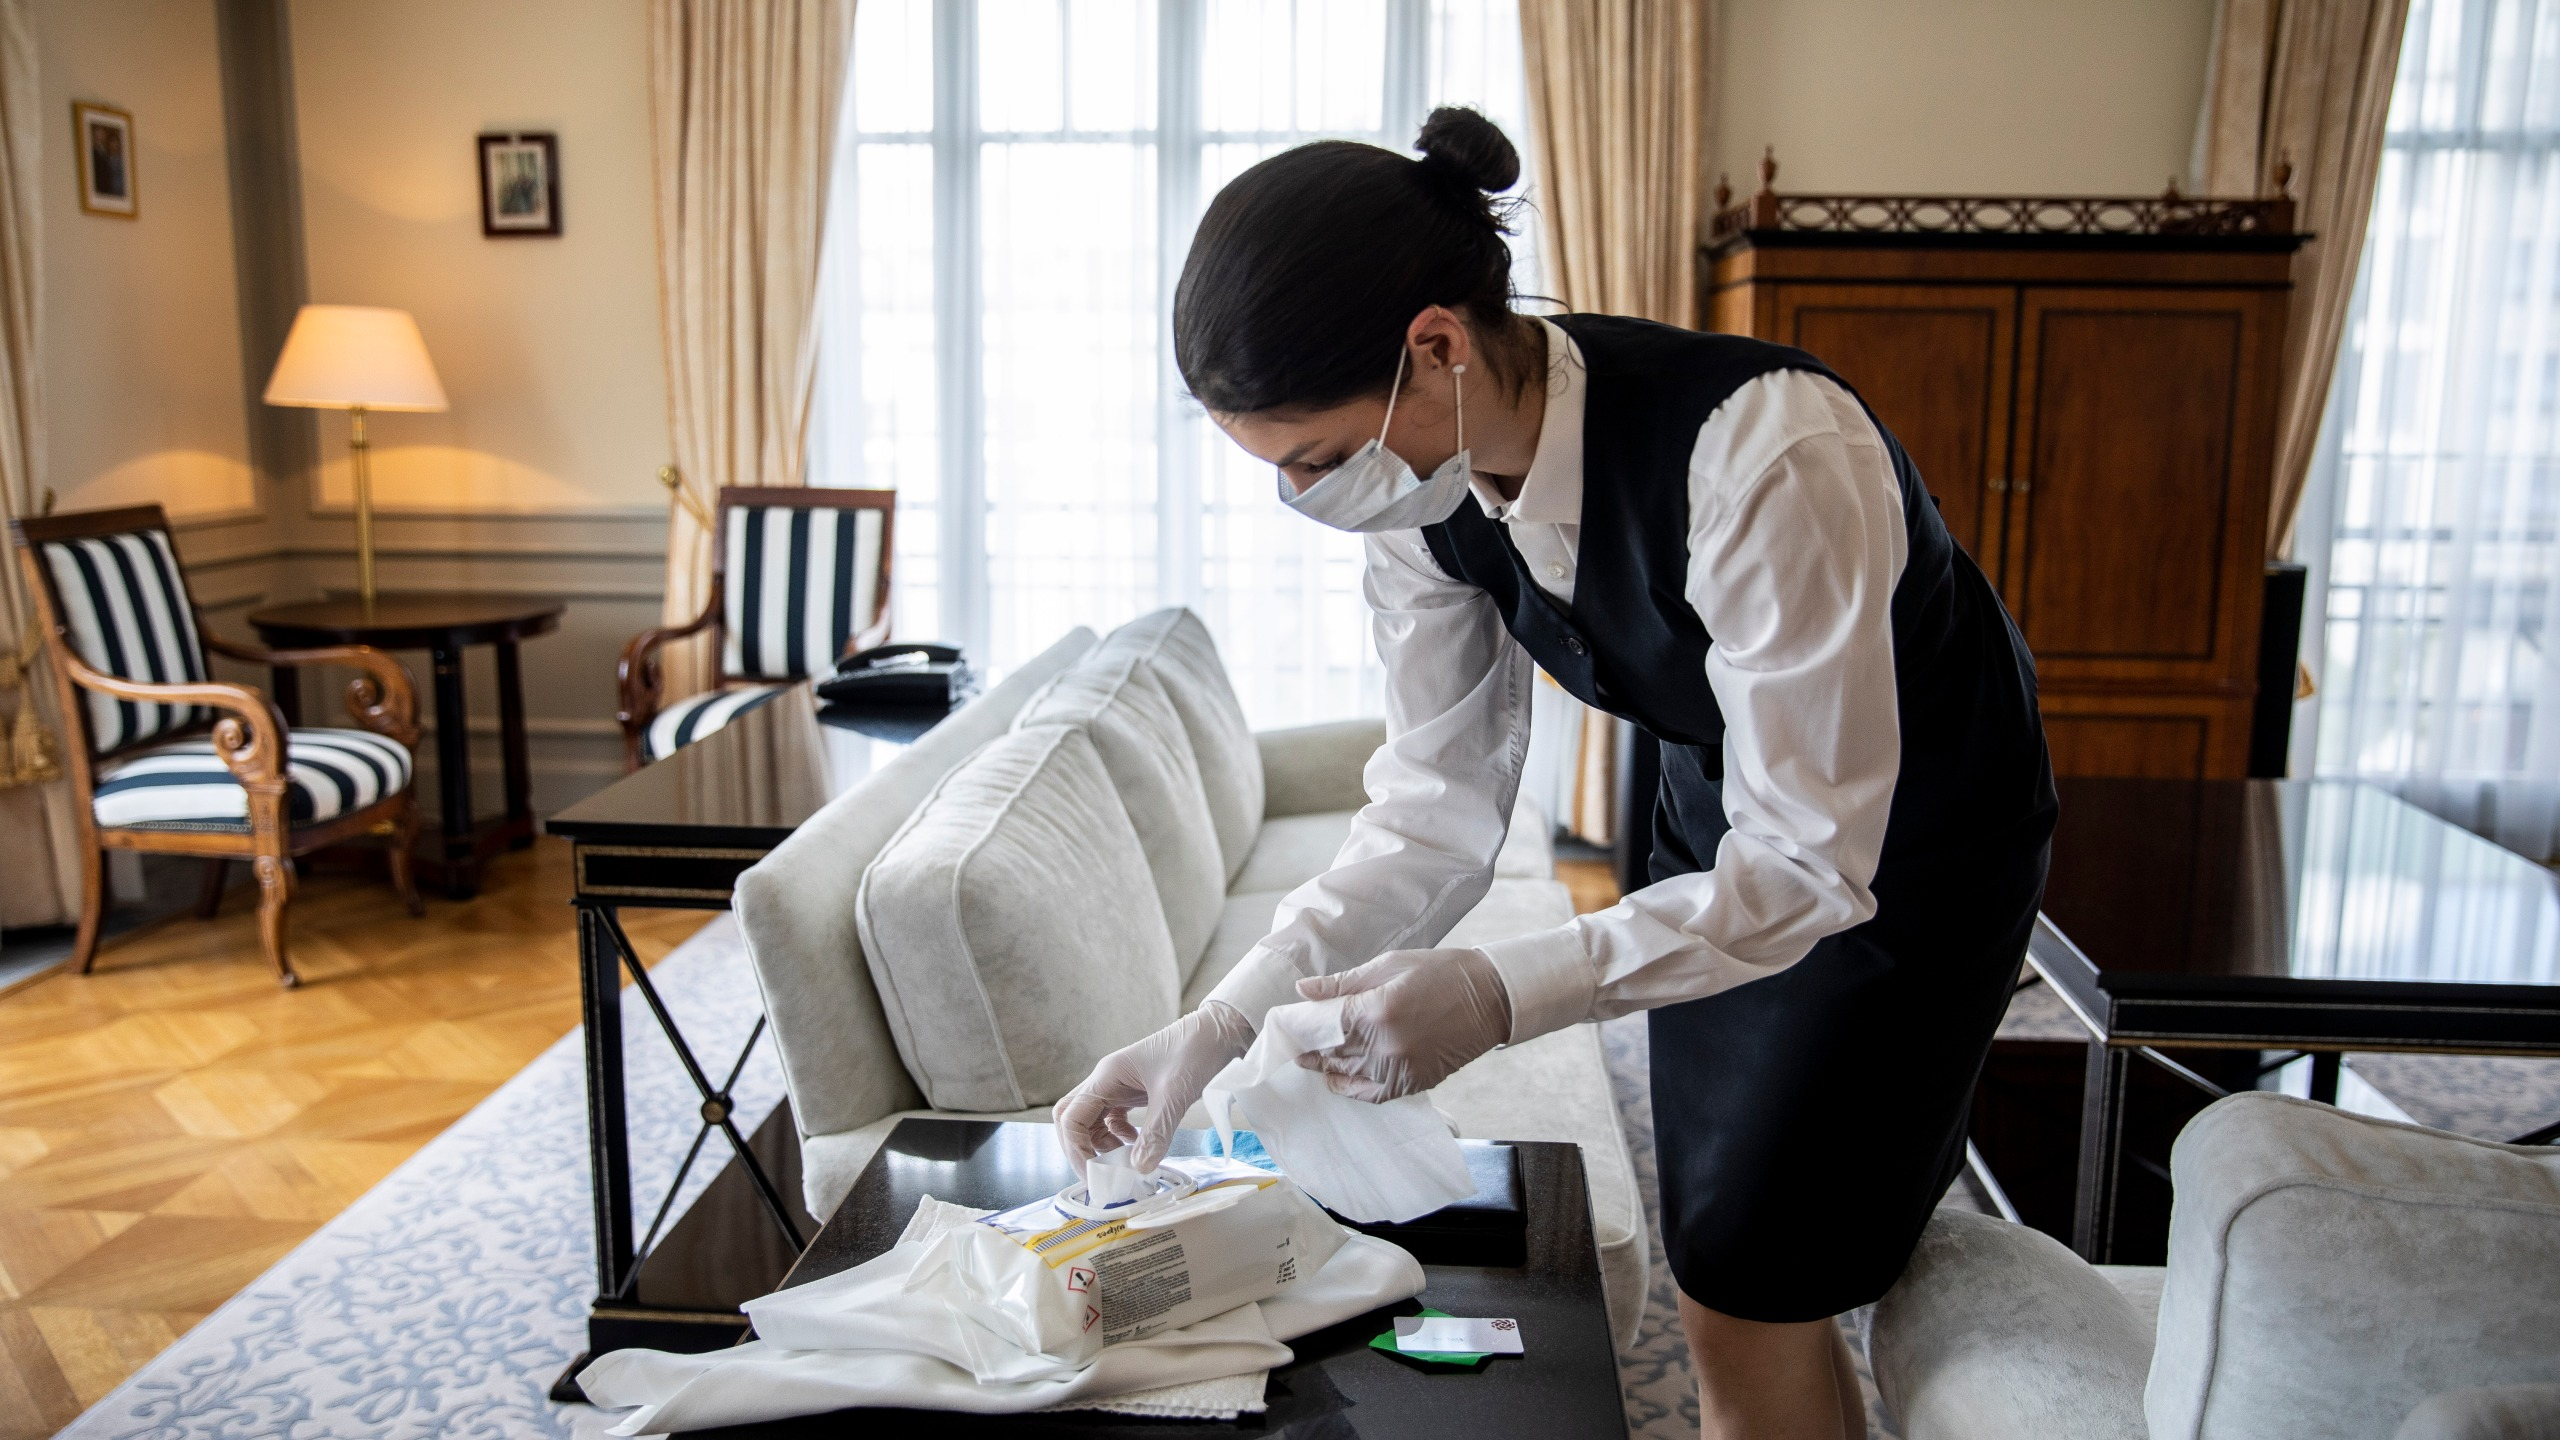 This file photo shows a housekeeper cleaning a hotel suite in Berlin, Germany on May 26, 2020. (Maja Hitij/Getty Images)